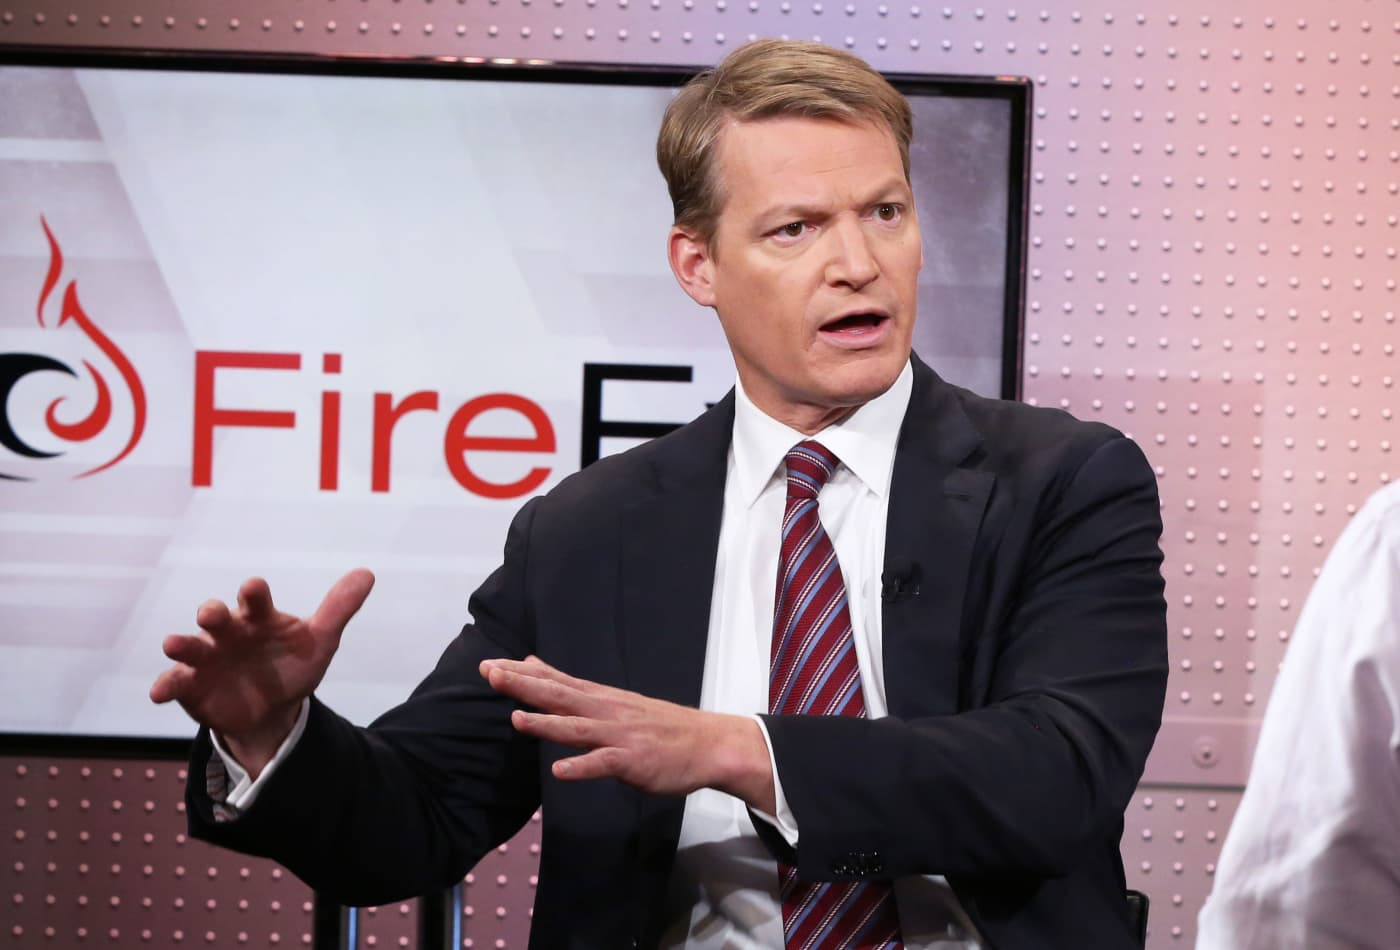 Misinformation — not voting machine hacks — is biggest threat to 2020 election, FireEye CEO says